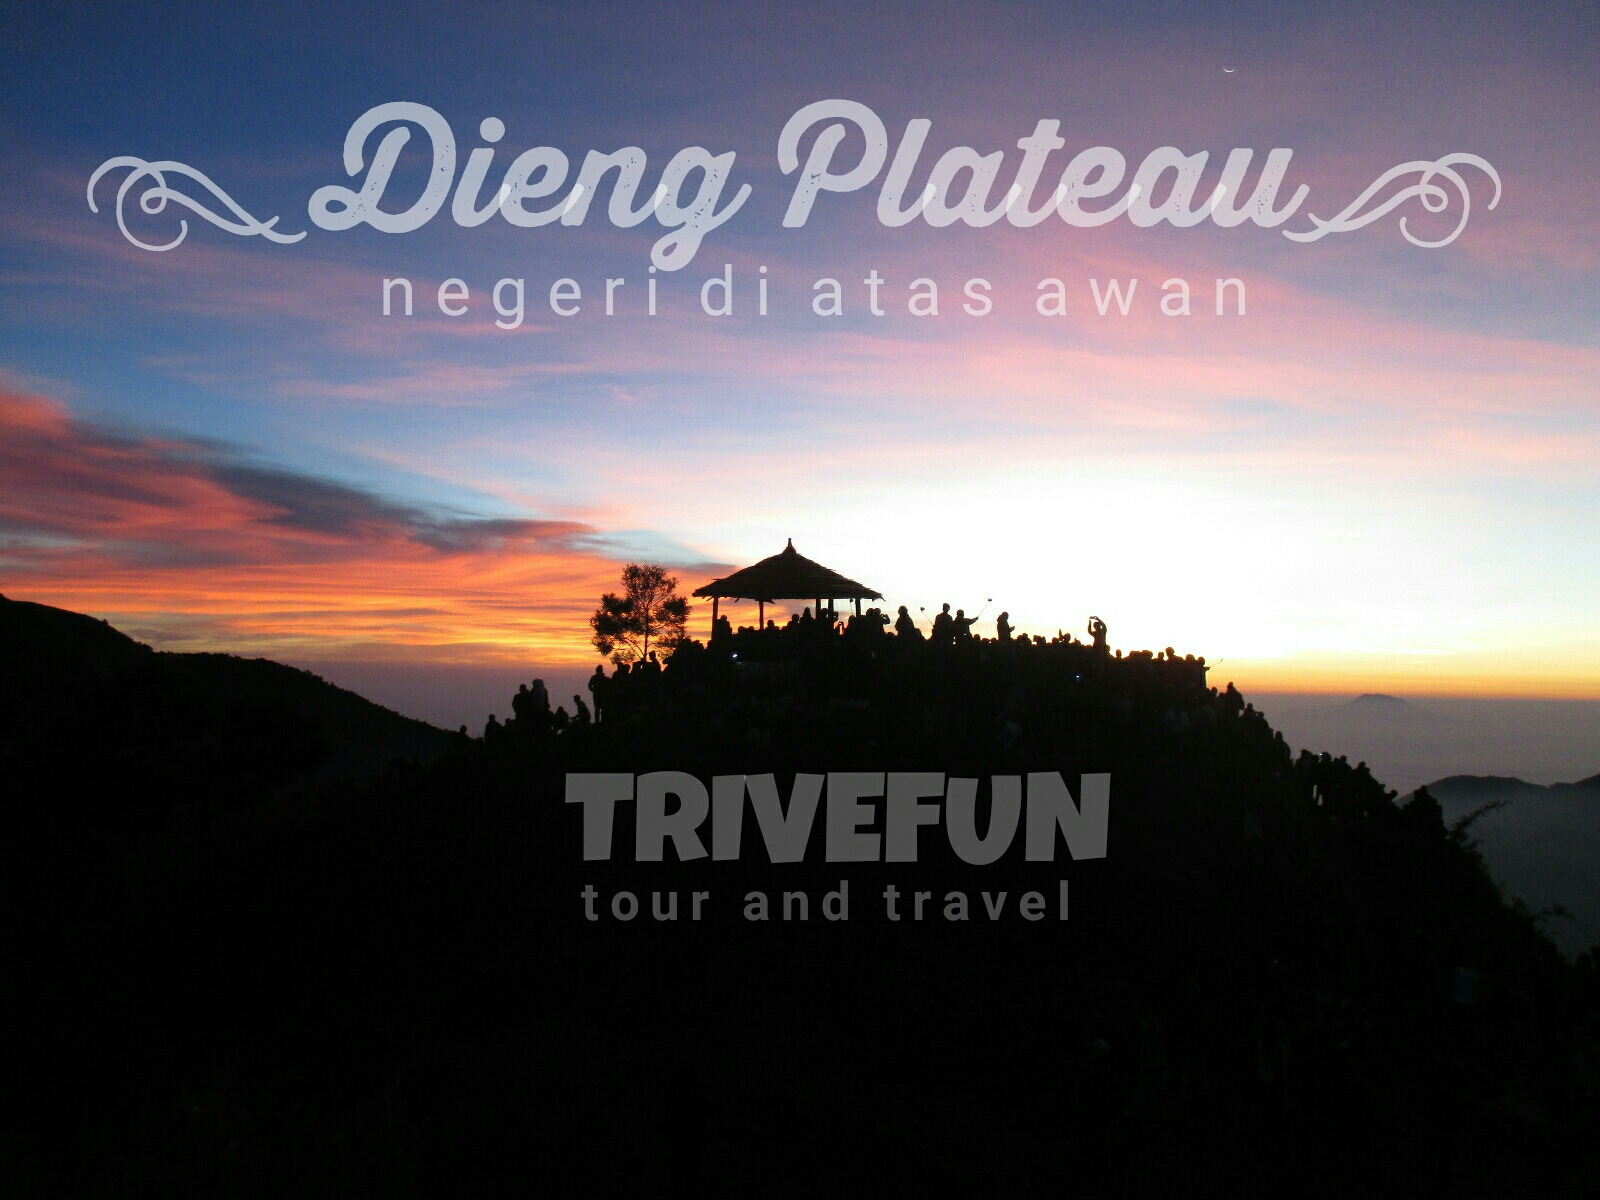 Open Trip Dieng Plateau - Trivefun Tour And Travel aja